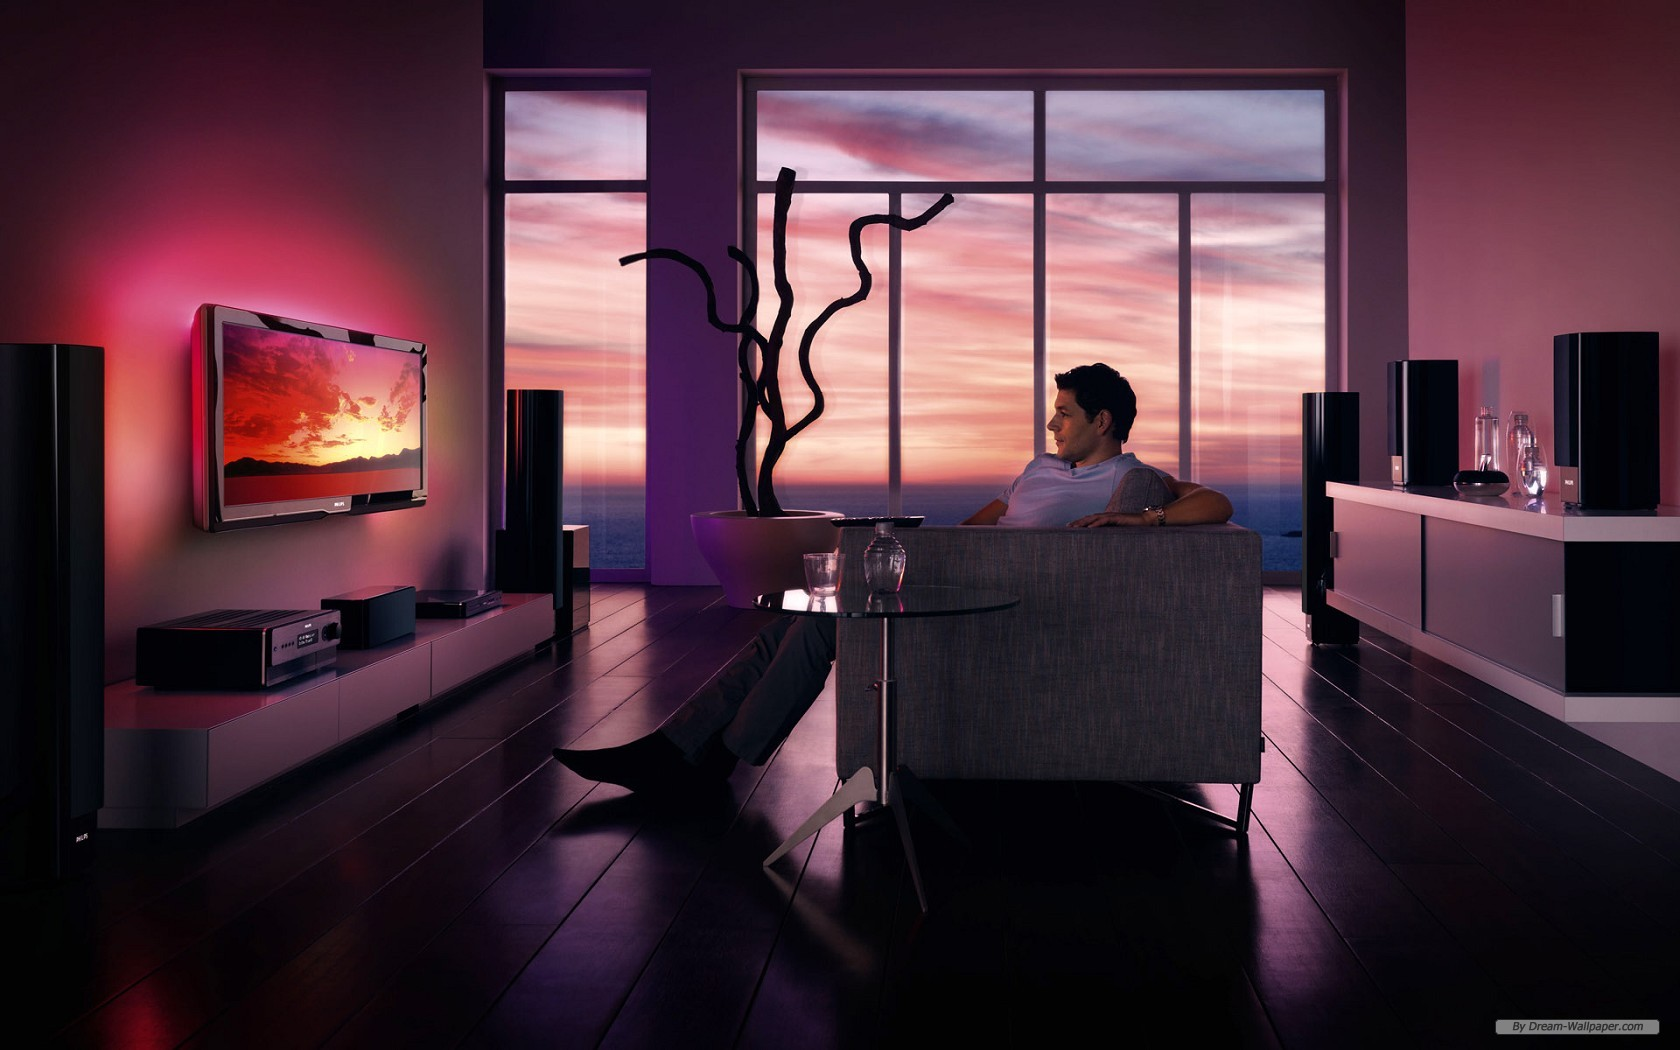 Home Theater PC Wallpaper 2